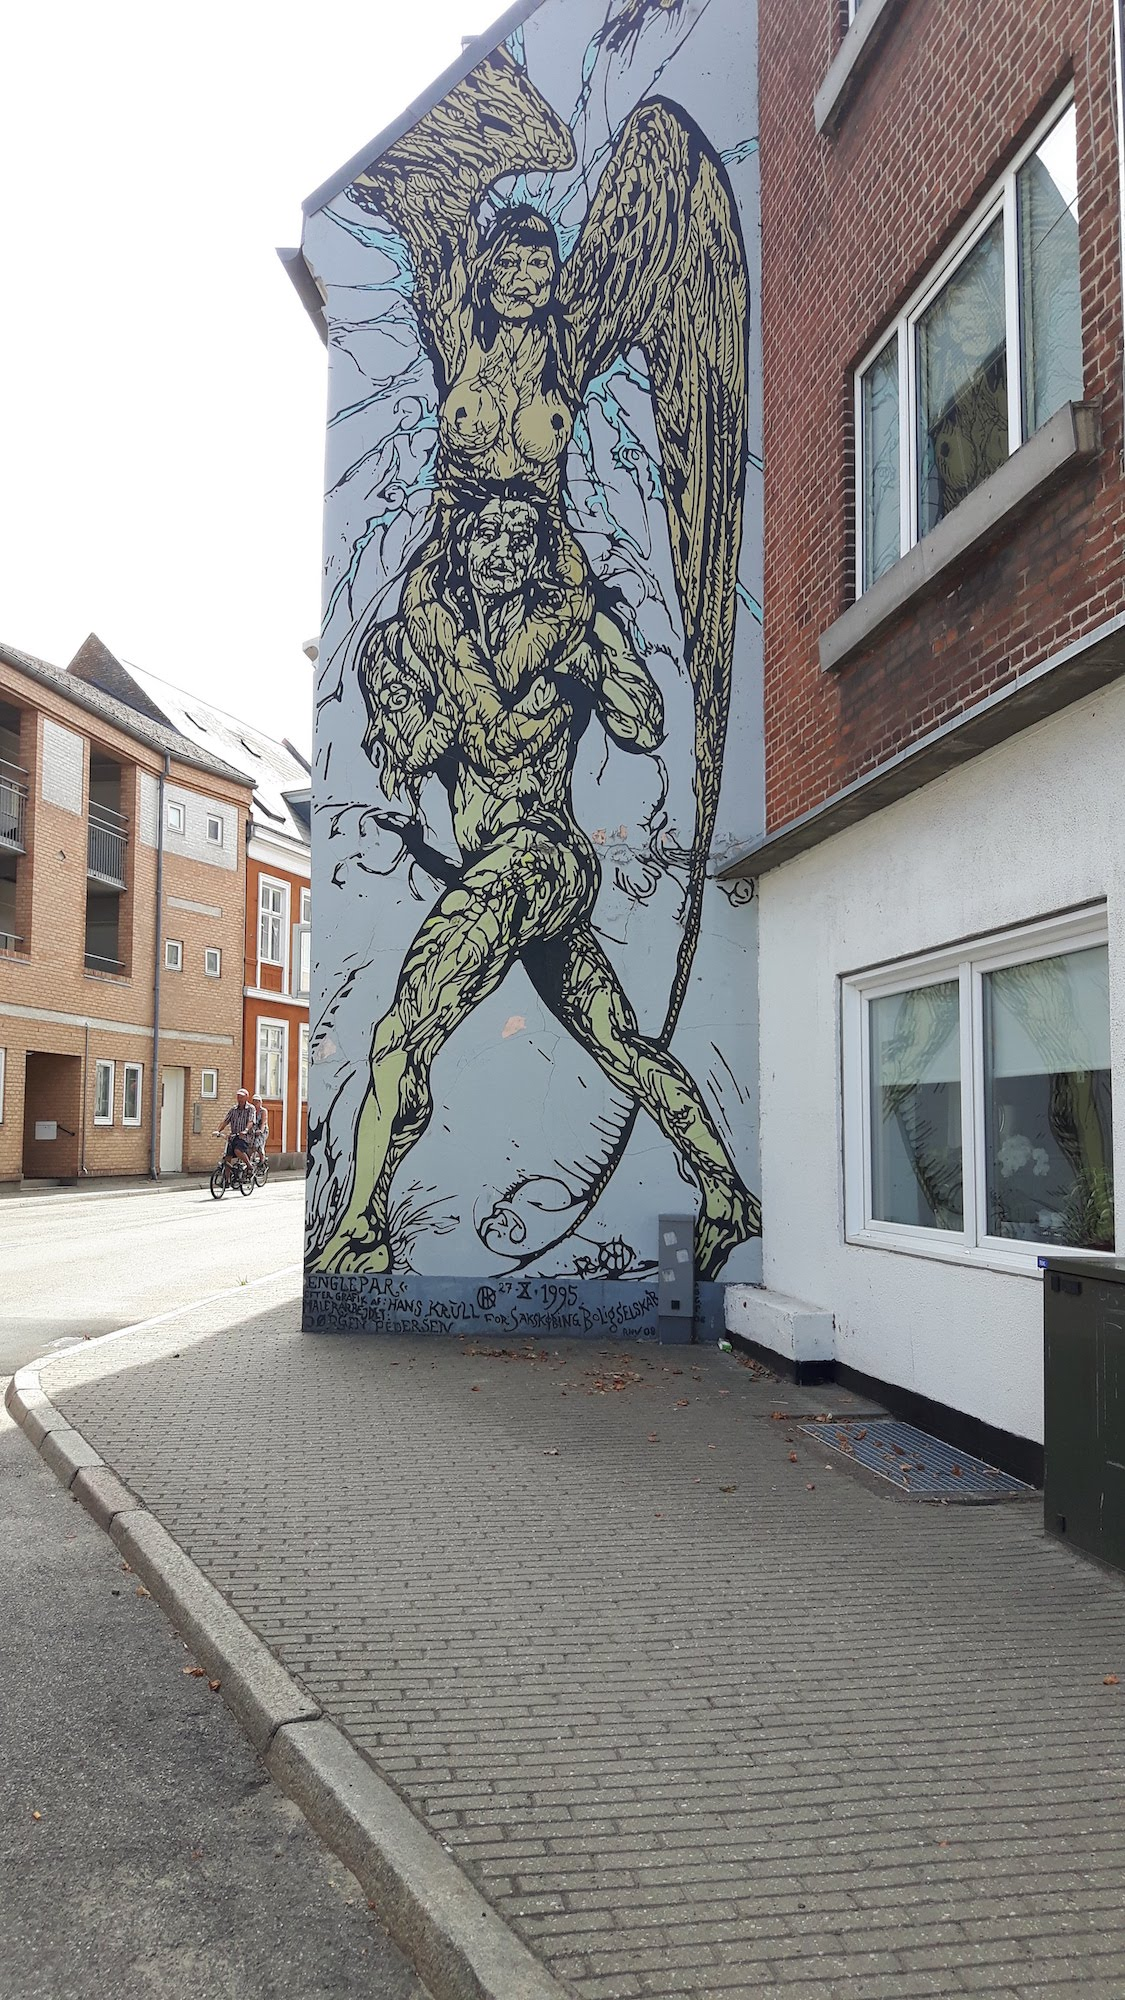 A painting on the side of a building in Denmark